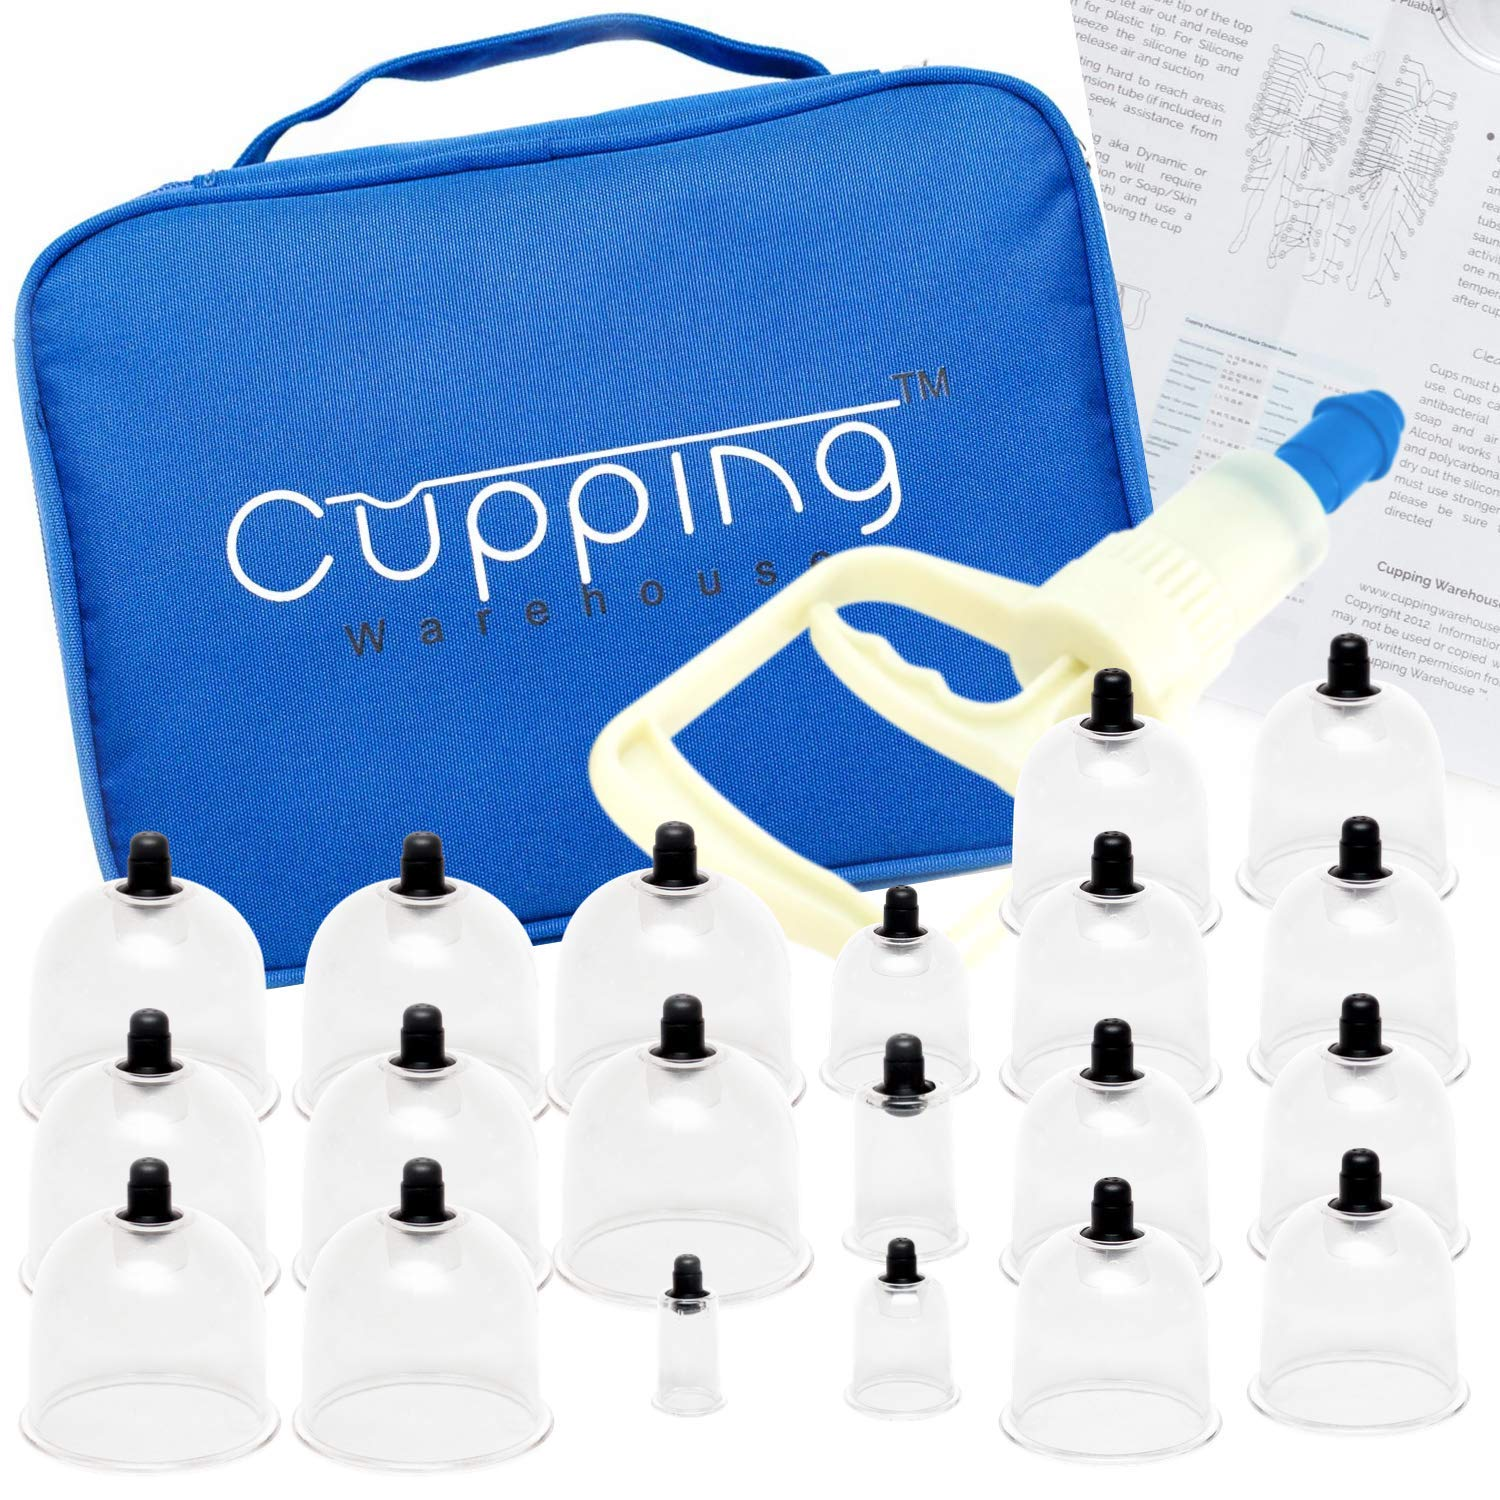 Cupping Warehouse 20 Chinese Cup Polycarbonate Professional Cupping Therapy Set with Pump Gun and Extension Tube and Silicone Top (20Chinese) by Cupping Warehouse TM